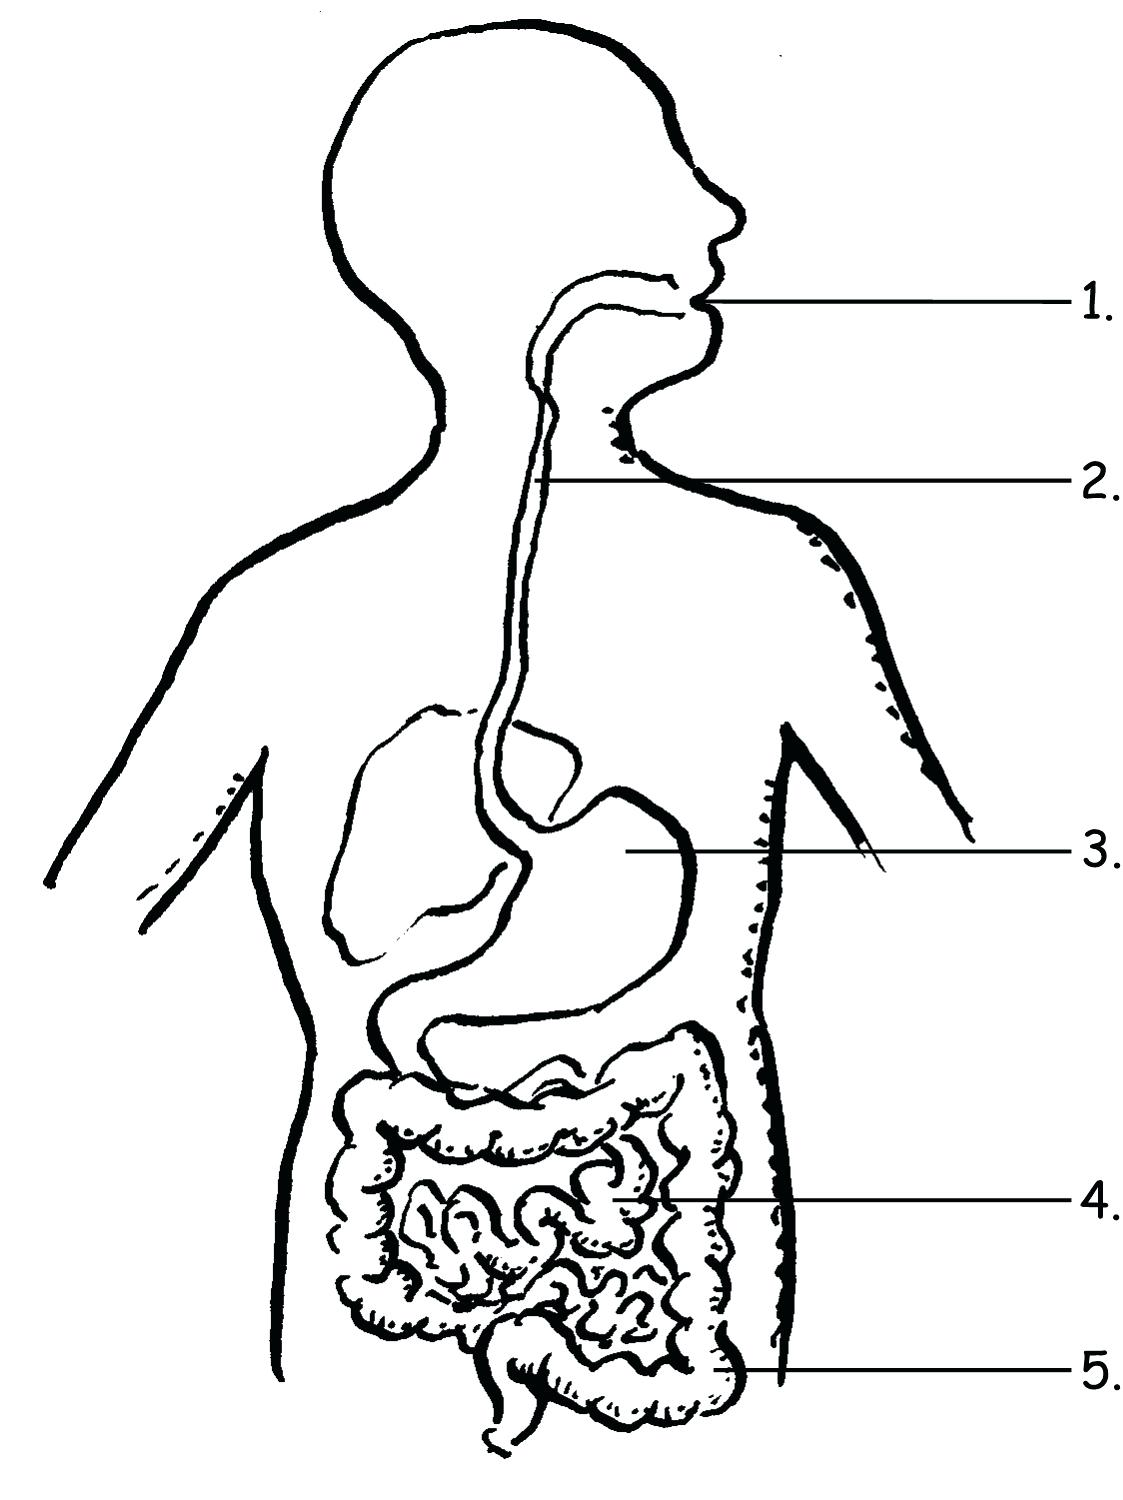 Digestive System Diagram Worksheets